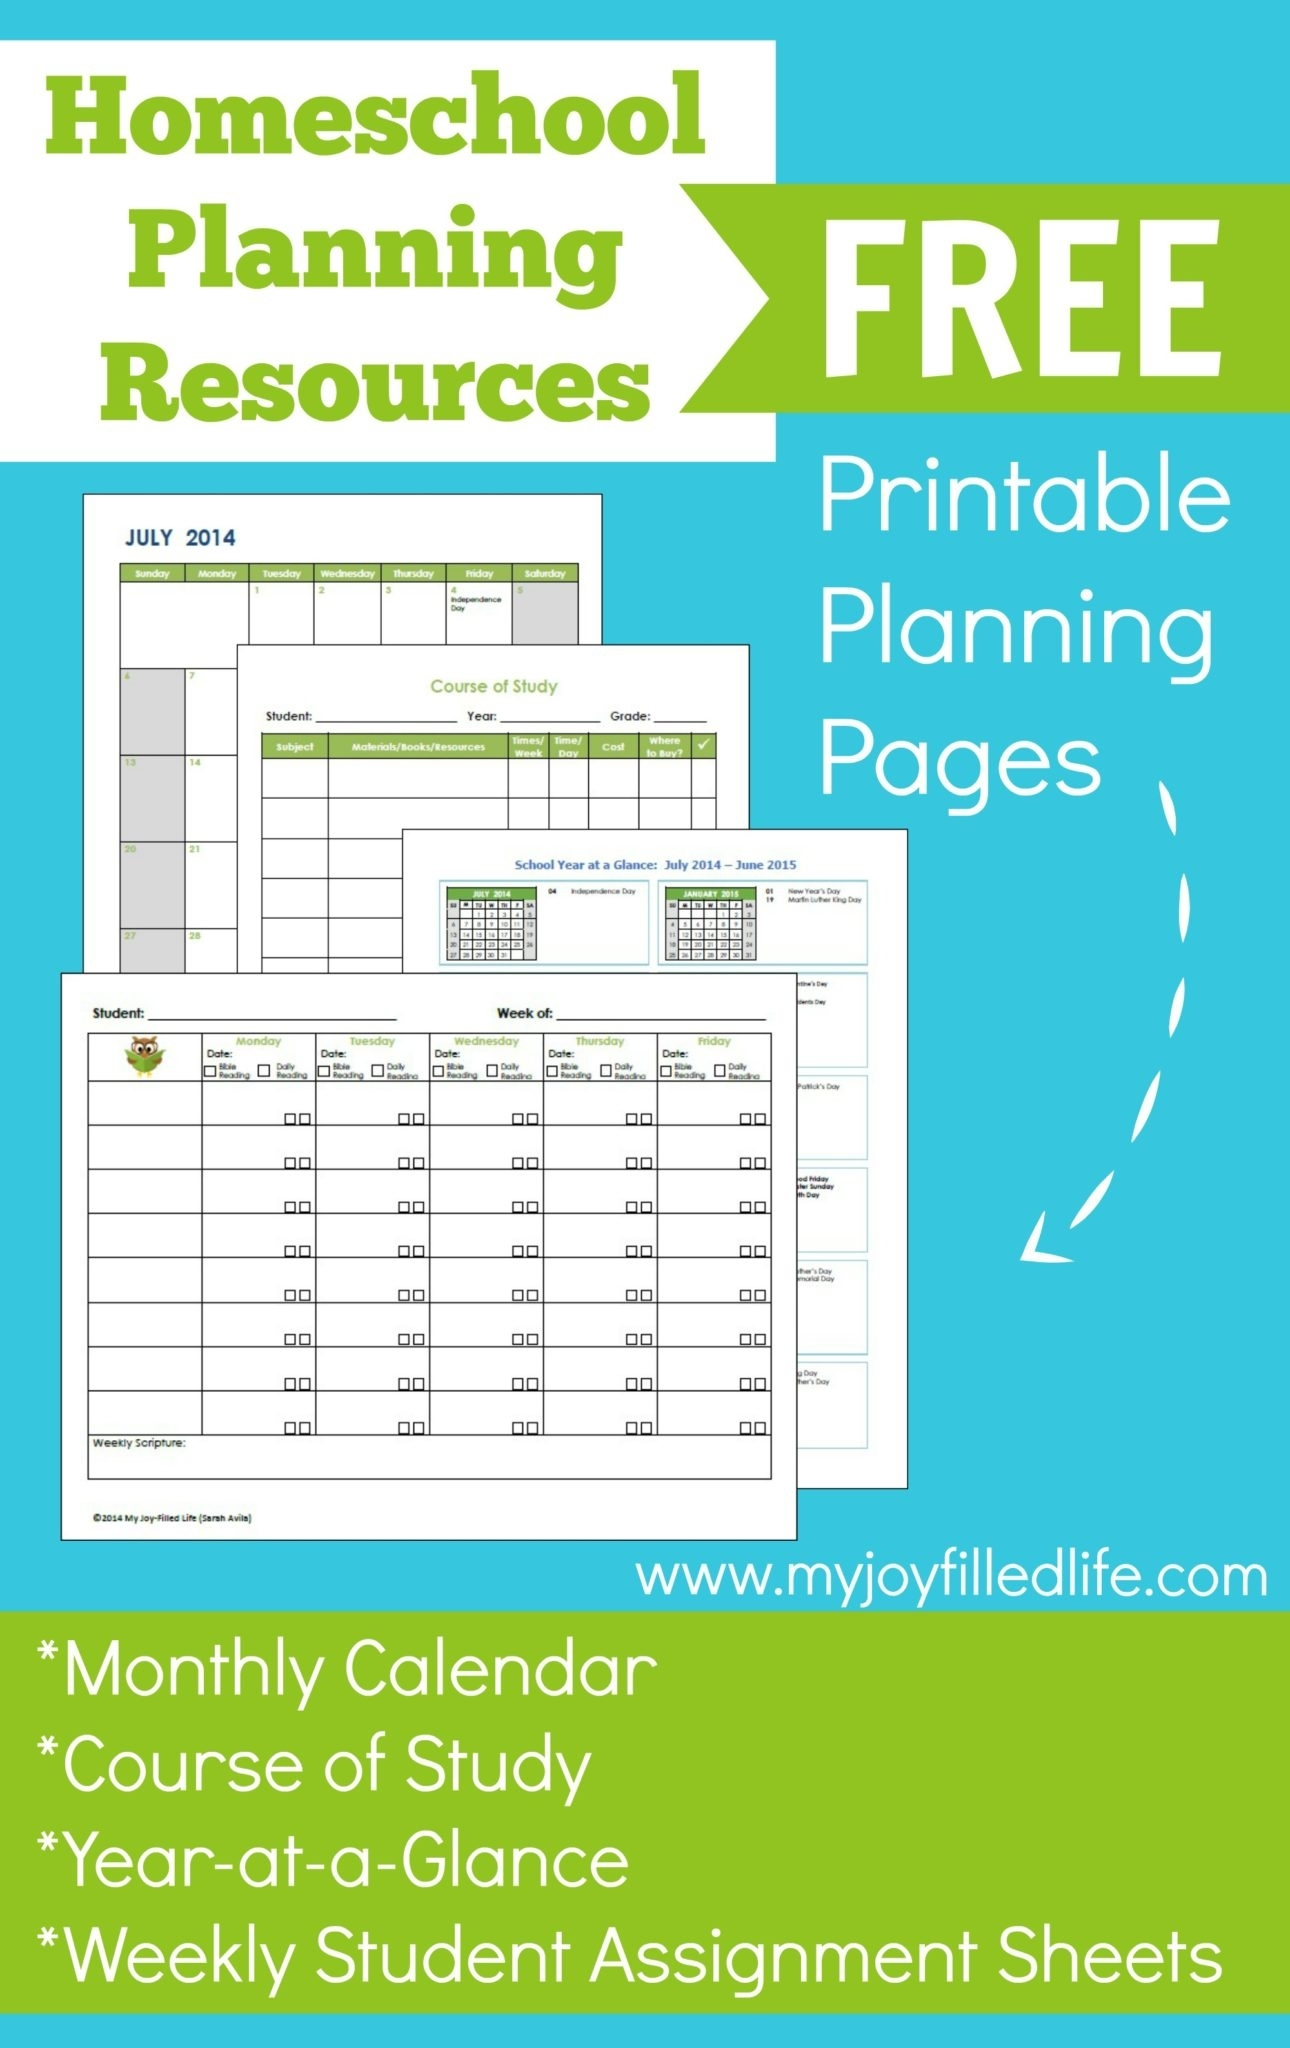 Homeschool Planning Resources & Free Printables - My Joy-Filled Life throughout Free Printable Homeschool Calendar 2019-2020 Year At A Glance